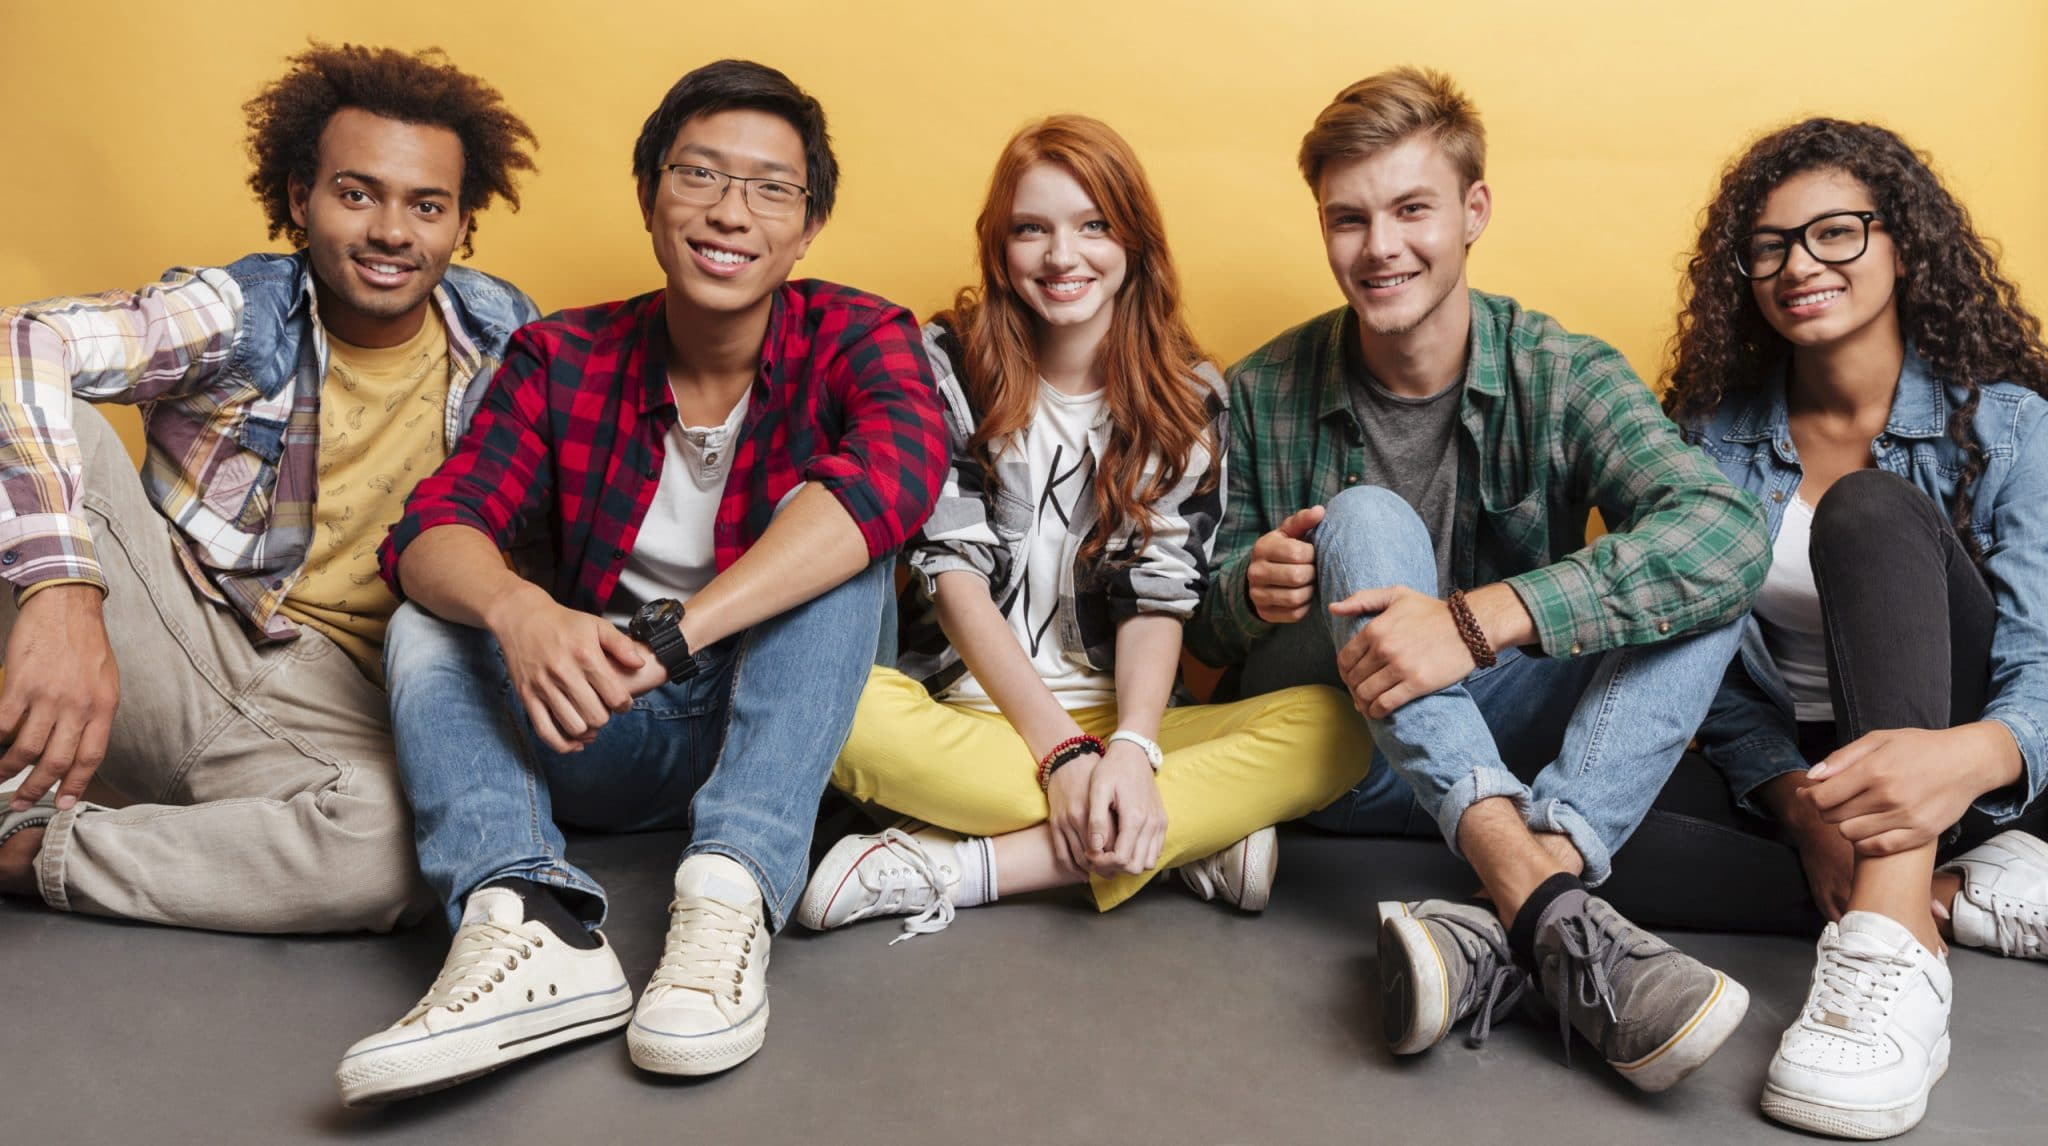 Multiethnic group of smiling friends sitting on the floor together